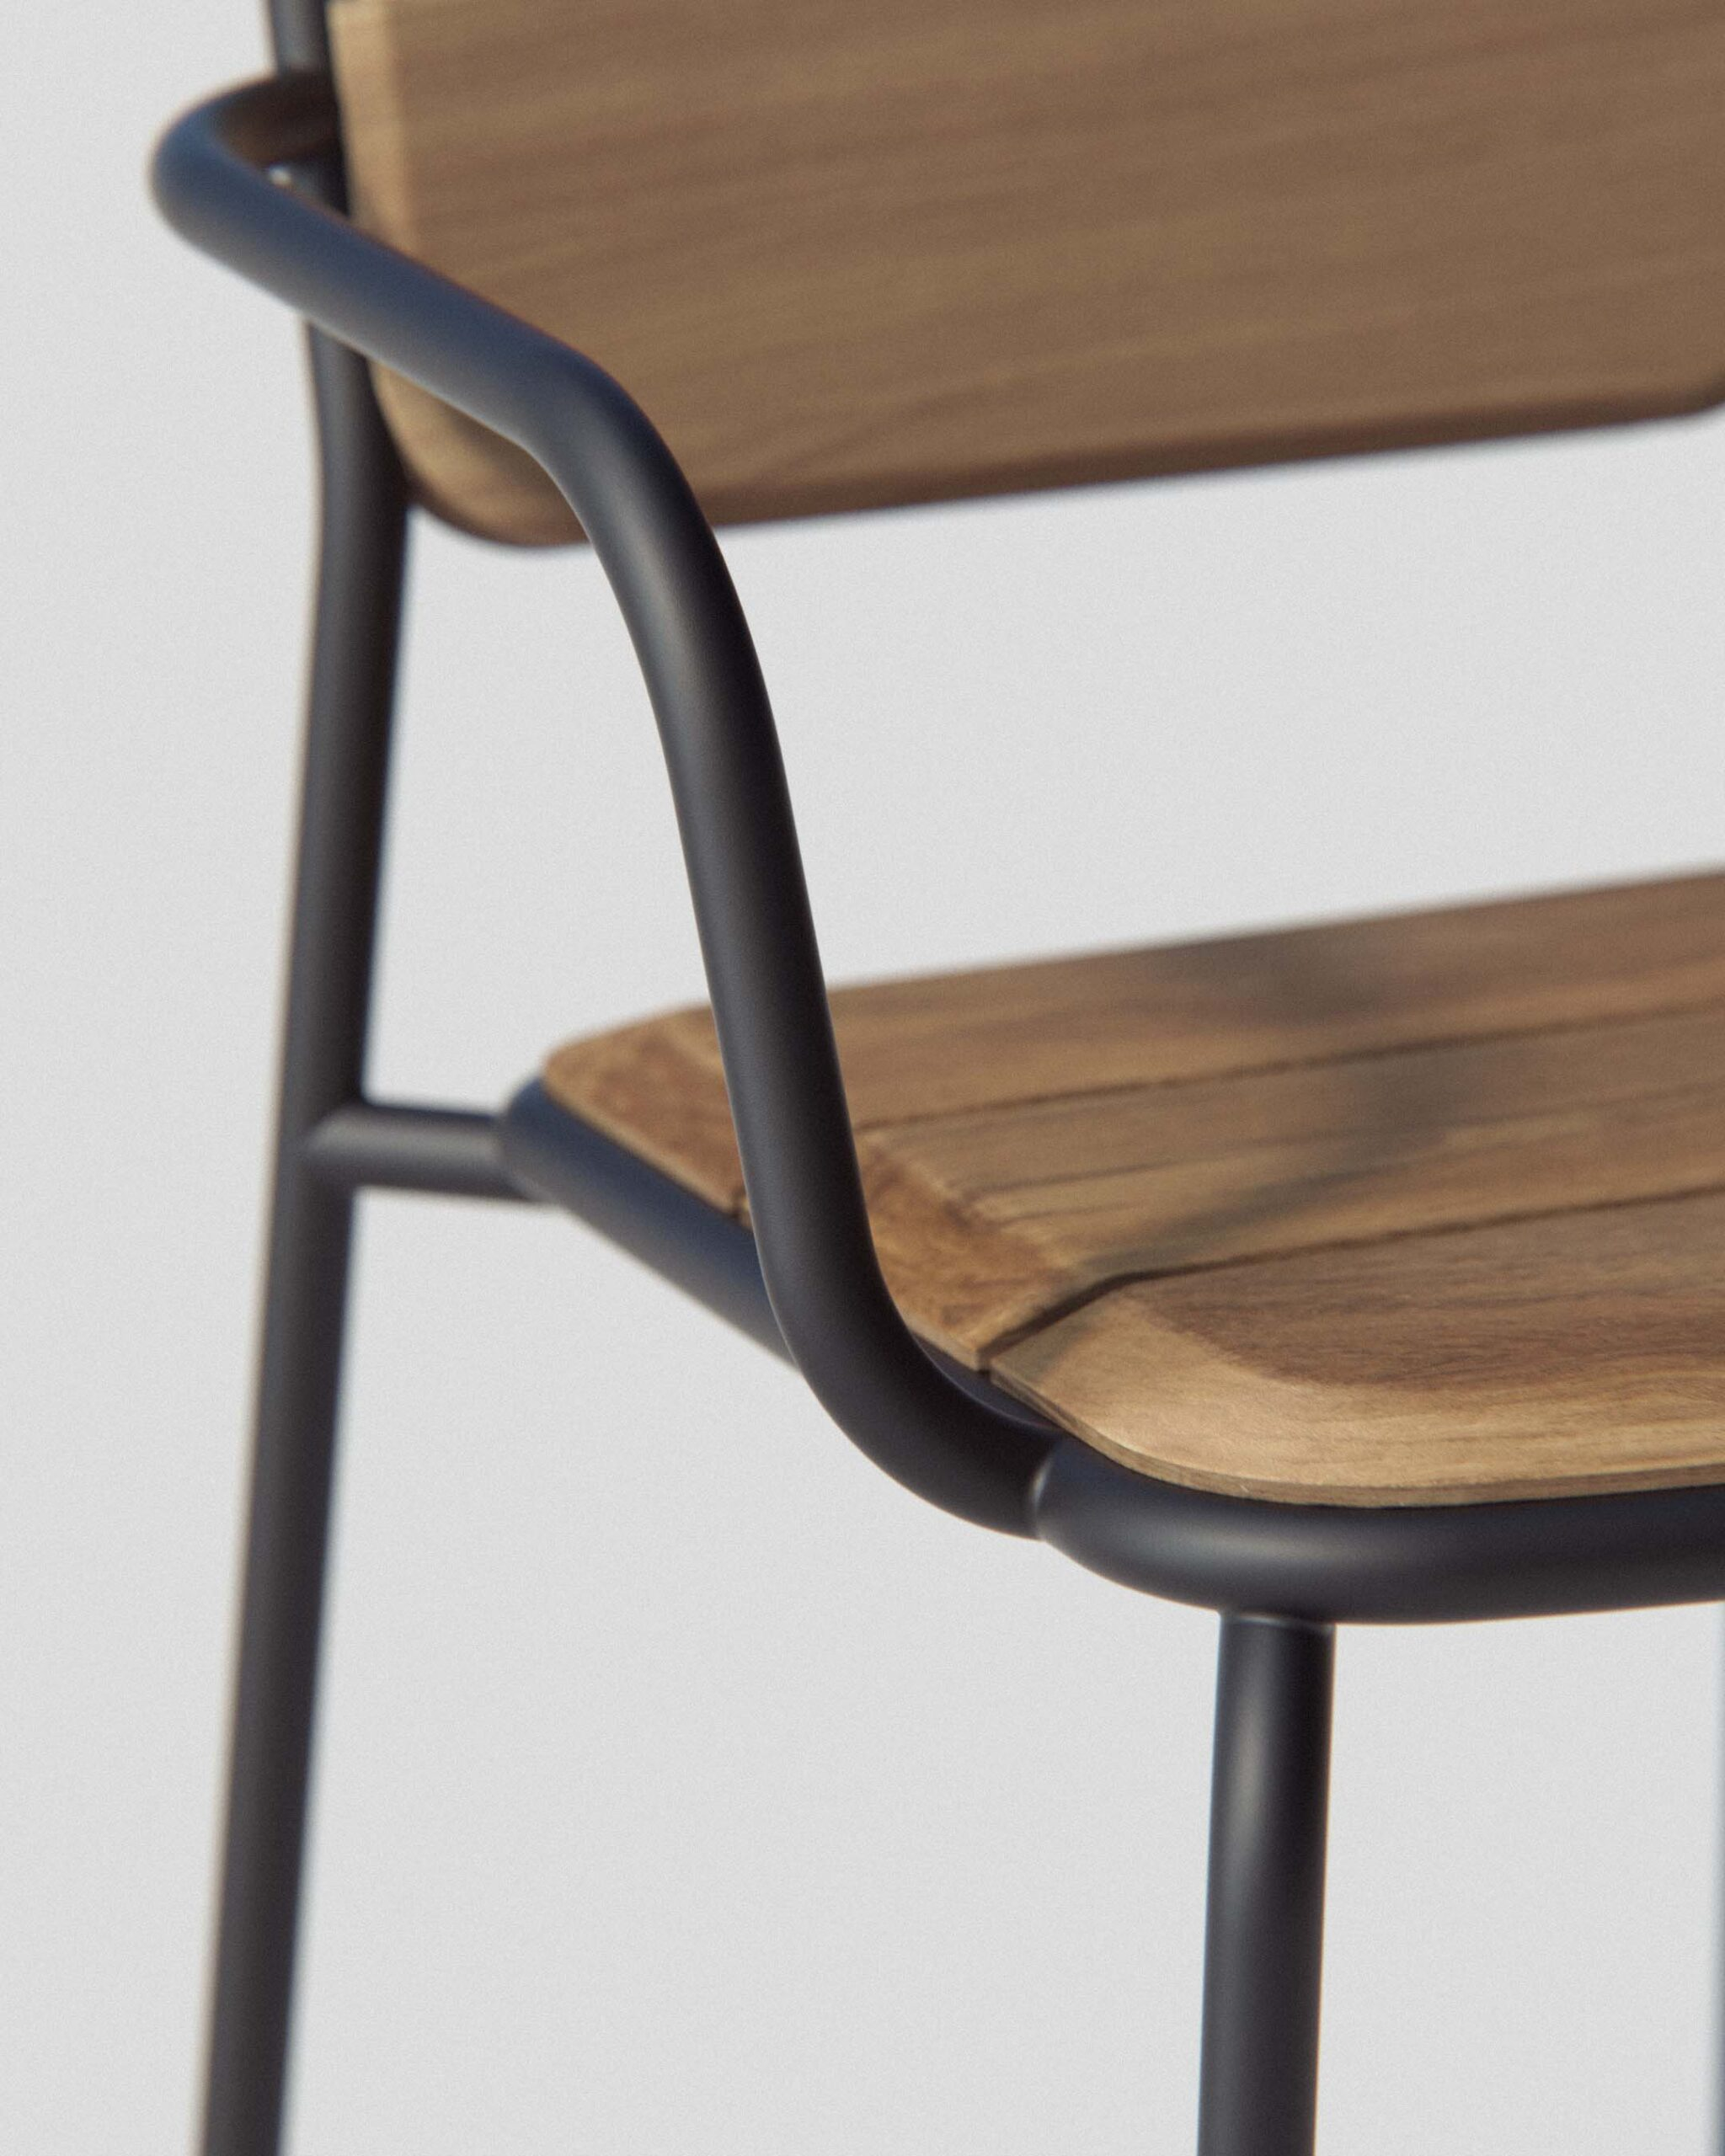 Andreas Bhend Industrial Design Studio TEAK Chair 01